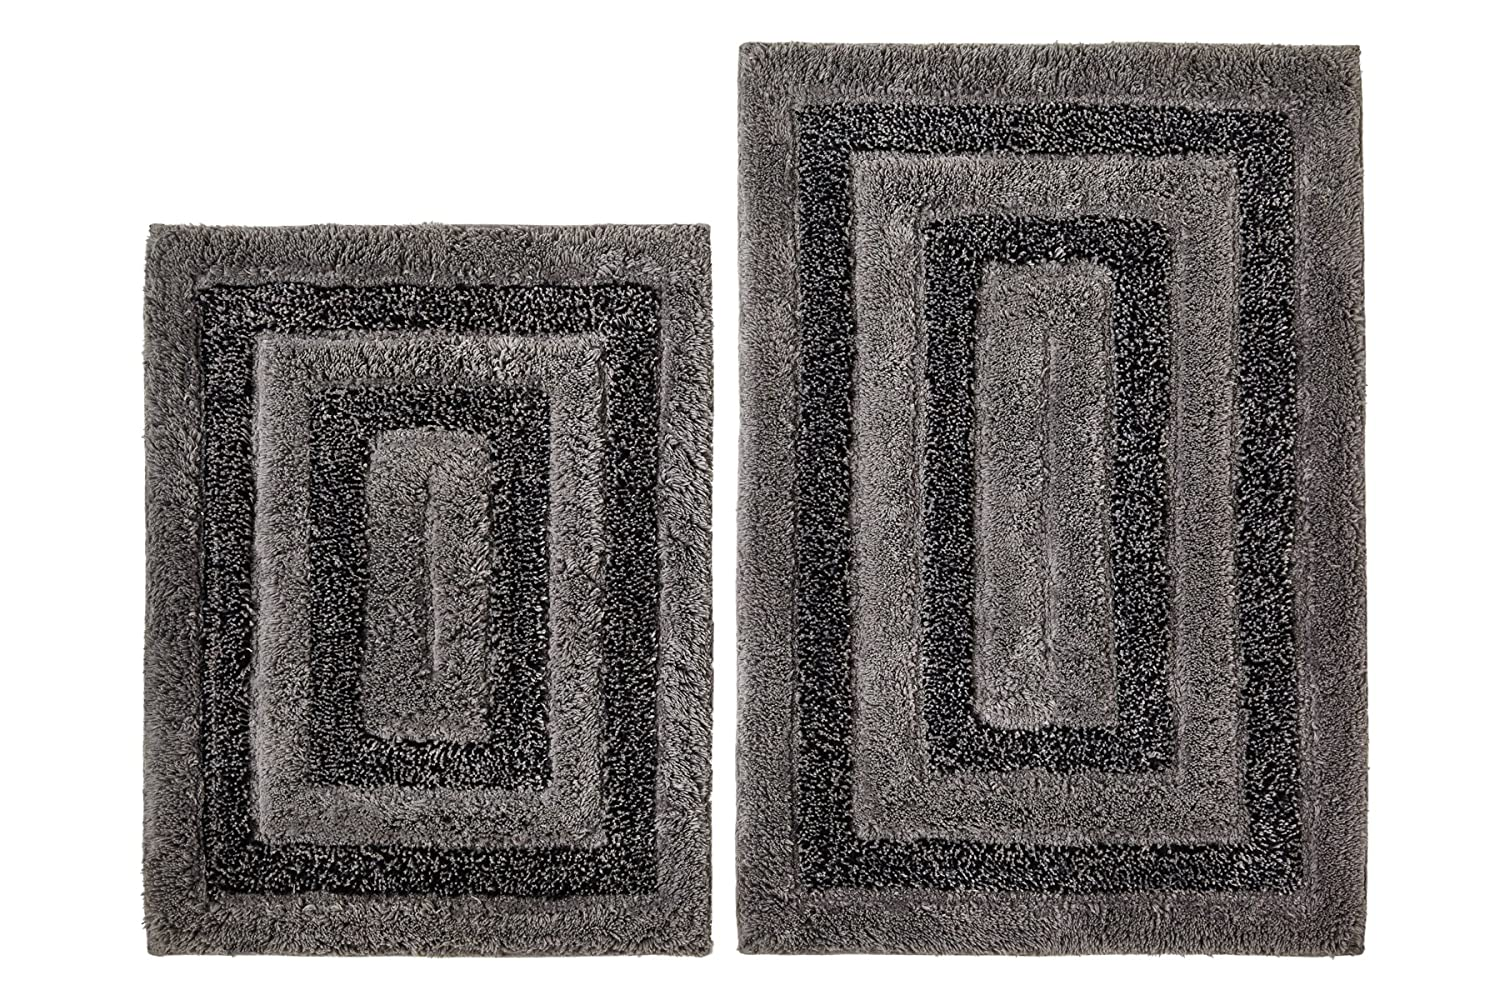 Shop Amazoncom Bath Rugs - Patterned bath mat for bathroom decorating ideas